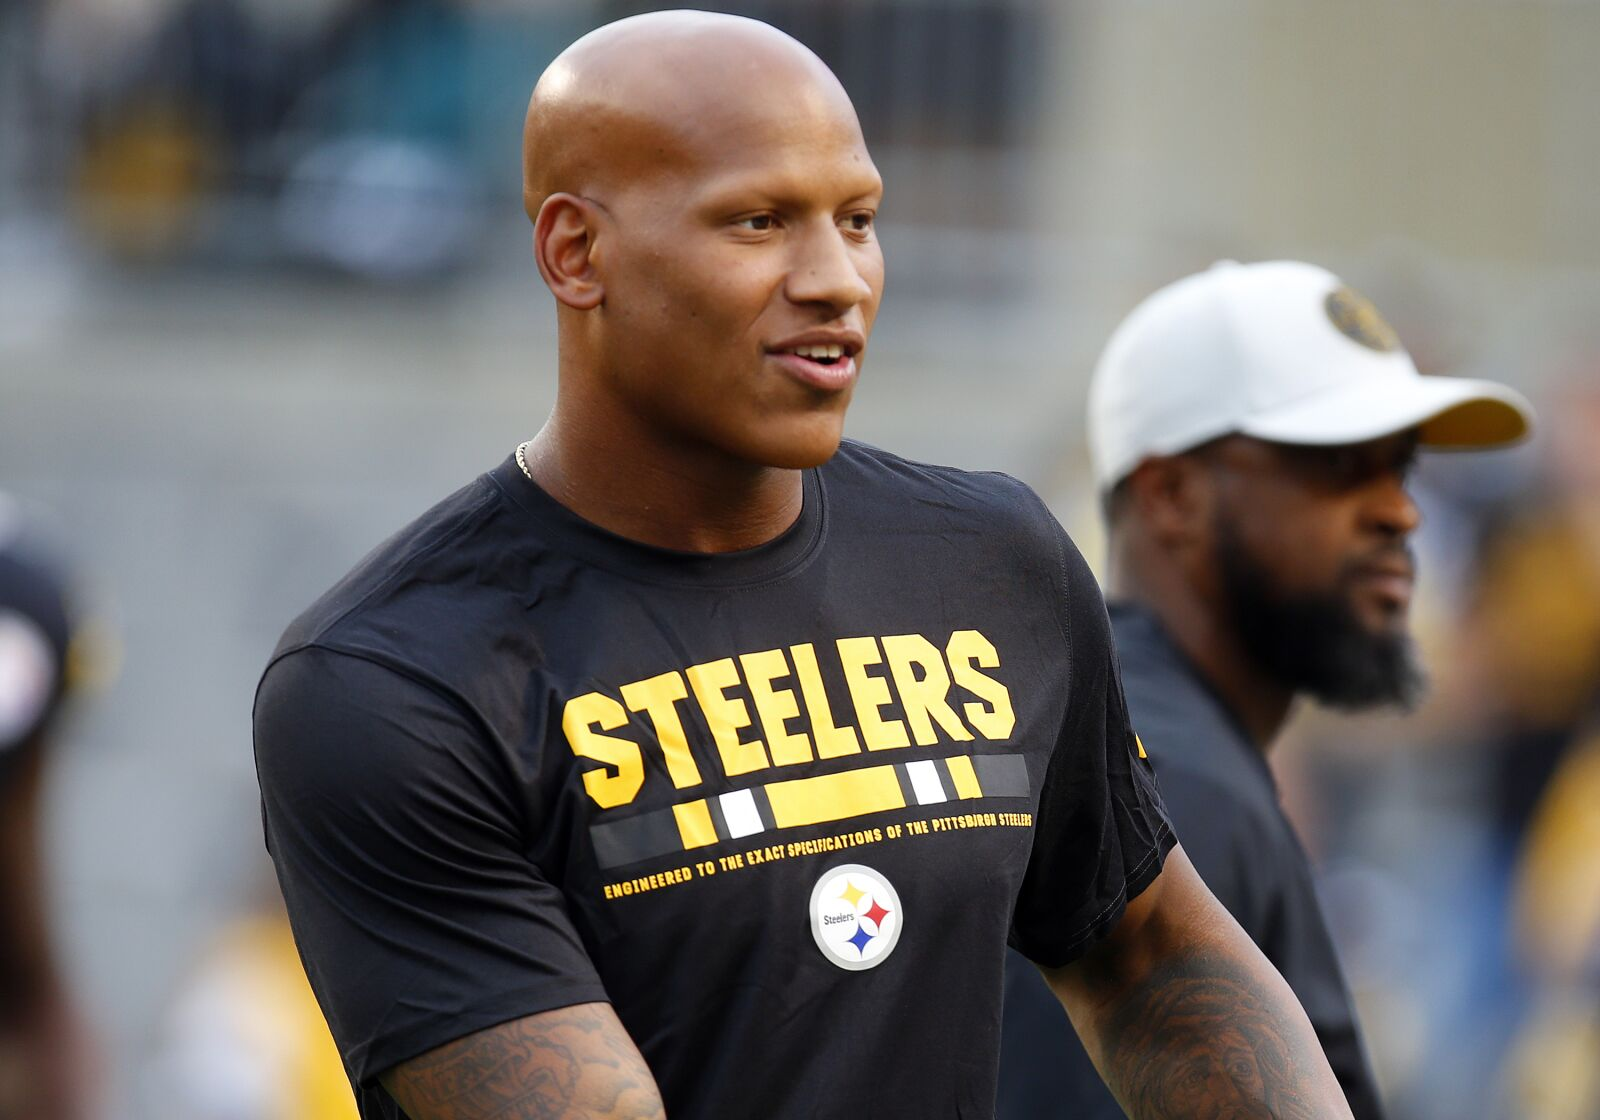 Pittsburgh Steelers: Ryan Shazier takes huge step forward in recovery